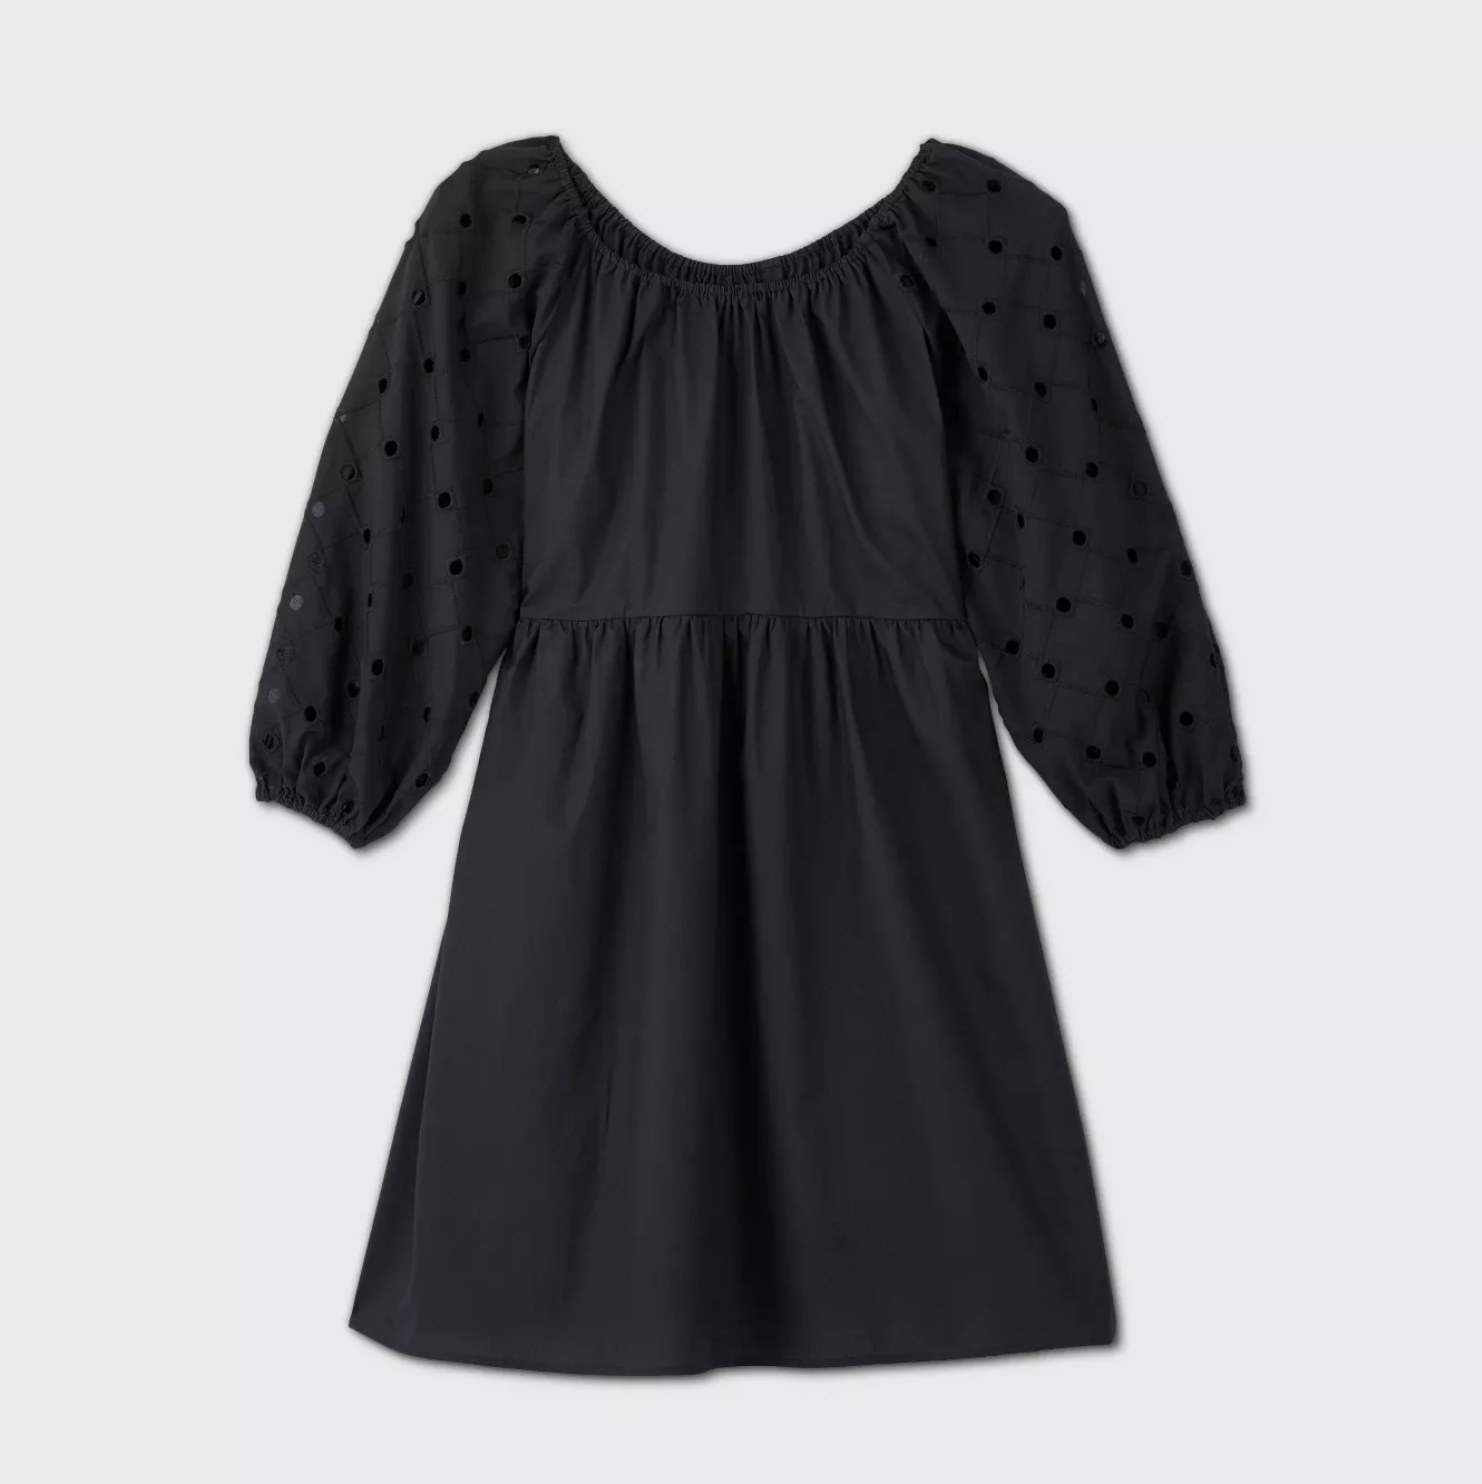 A black baby doll dress with a wide neck and black dots on the sleeves